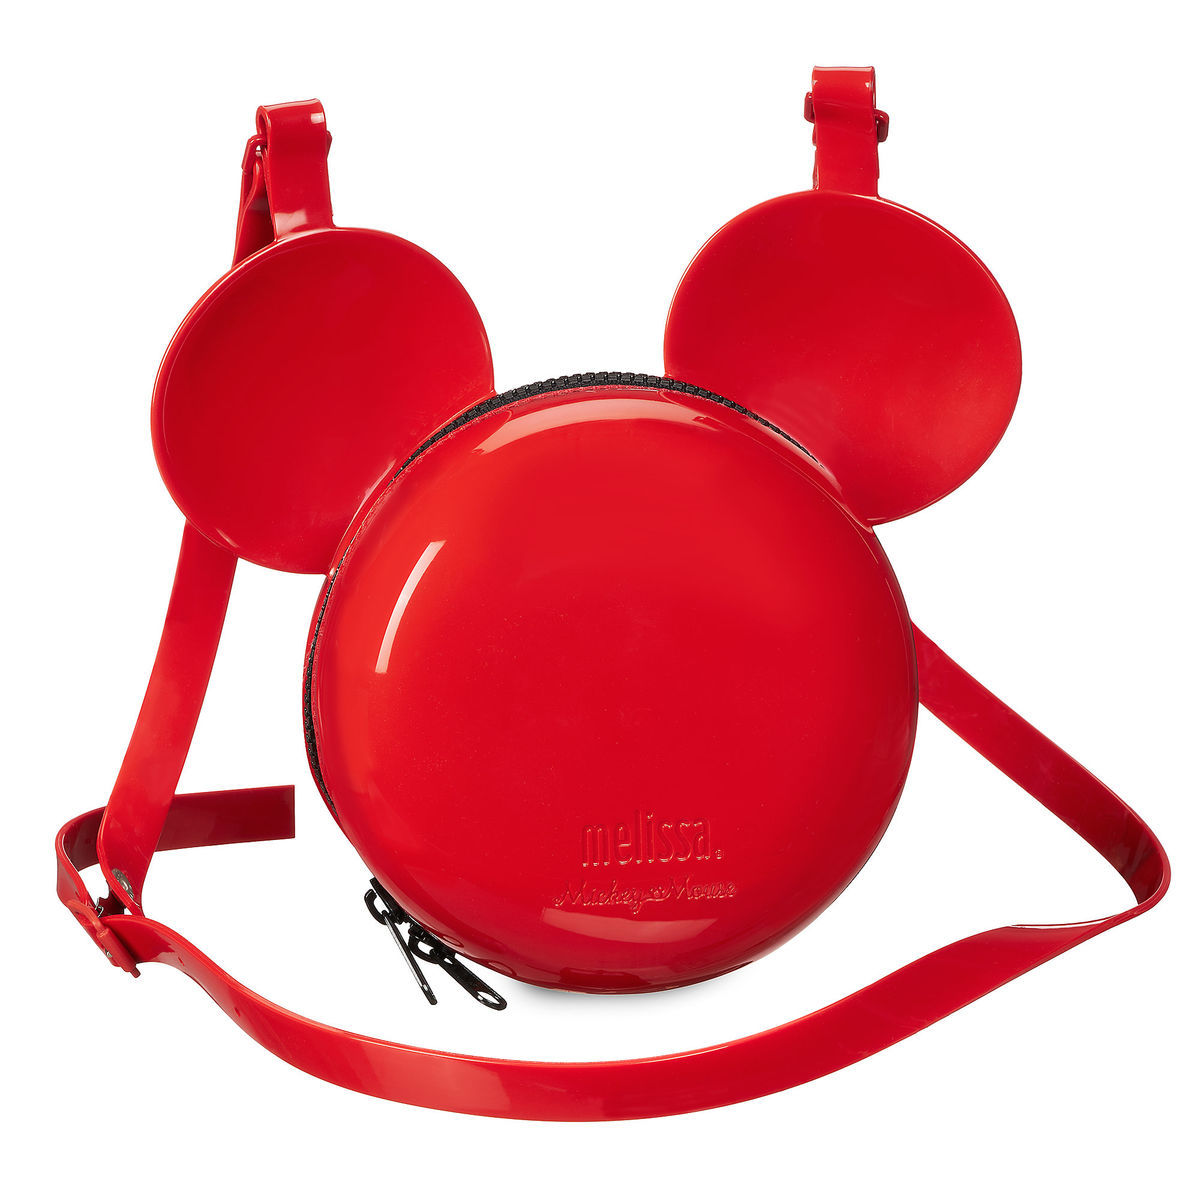 Product Image of Mickey Mouse Crossbody Bag by Melissa - Red   1 8e1c1df1dd174